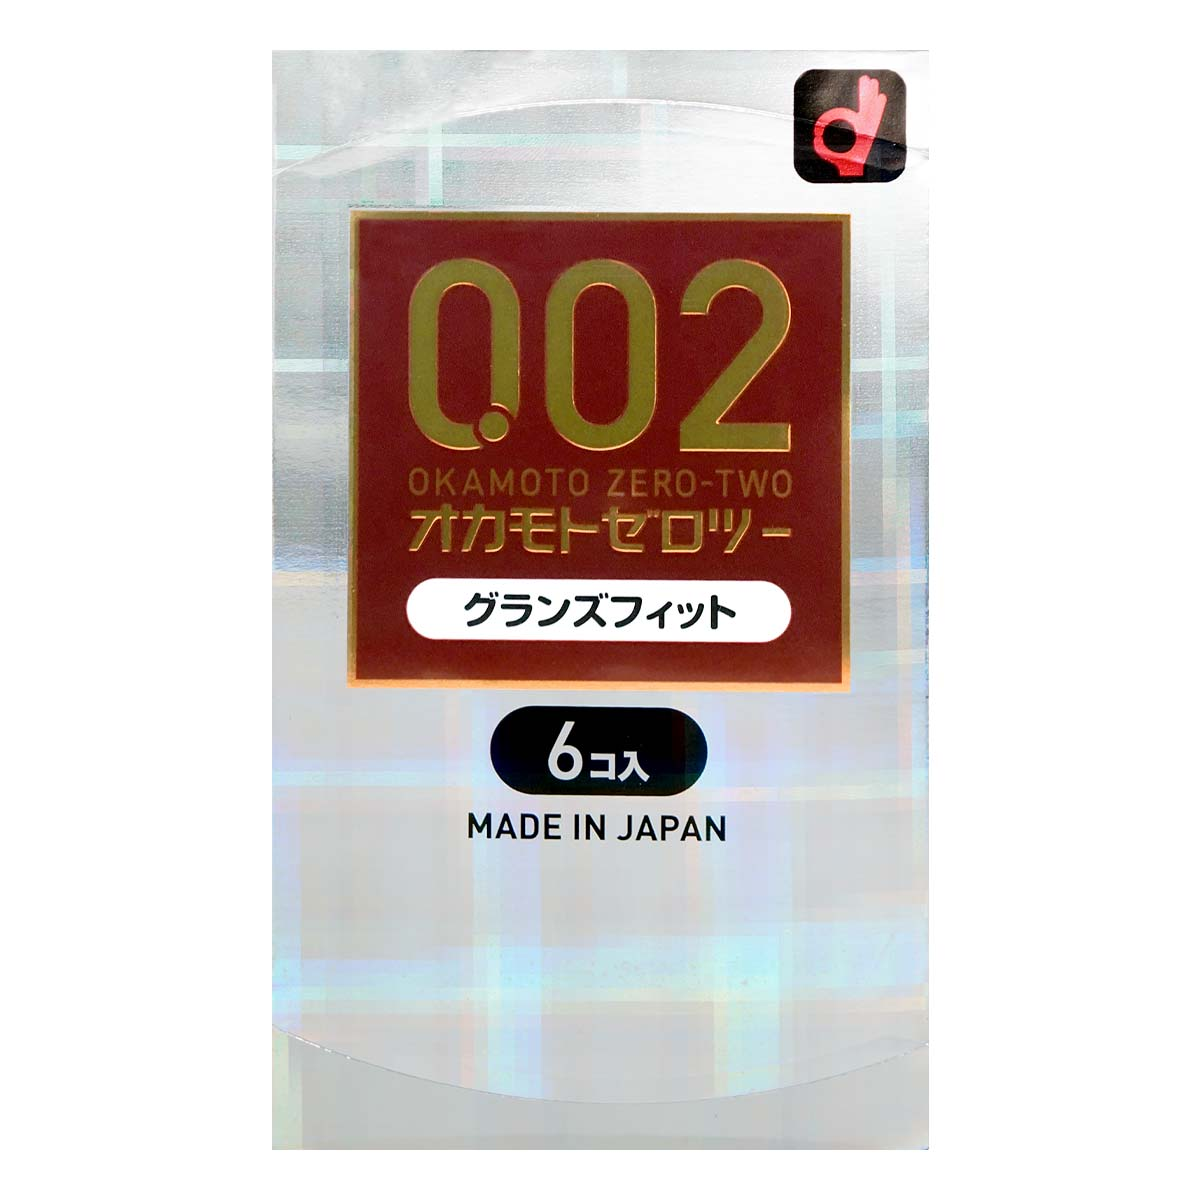 Okamoto Unified Thinness 0.02EX Glans Fit (Japan Edition) 58/56mm 6's Pack PU Condom